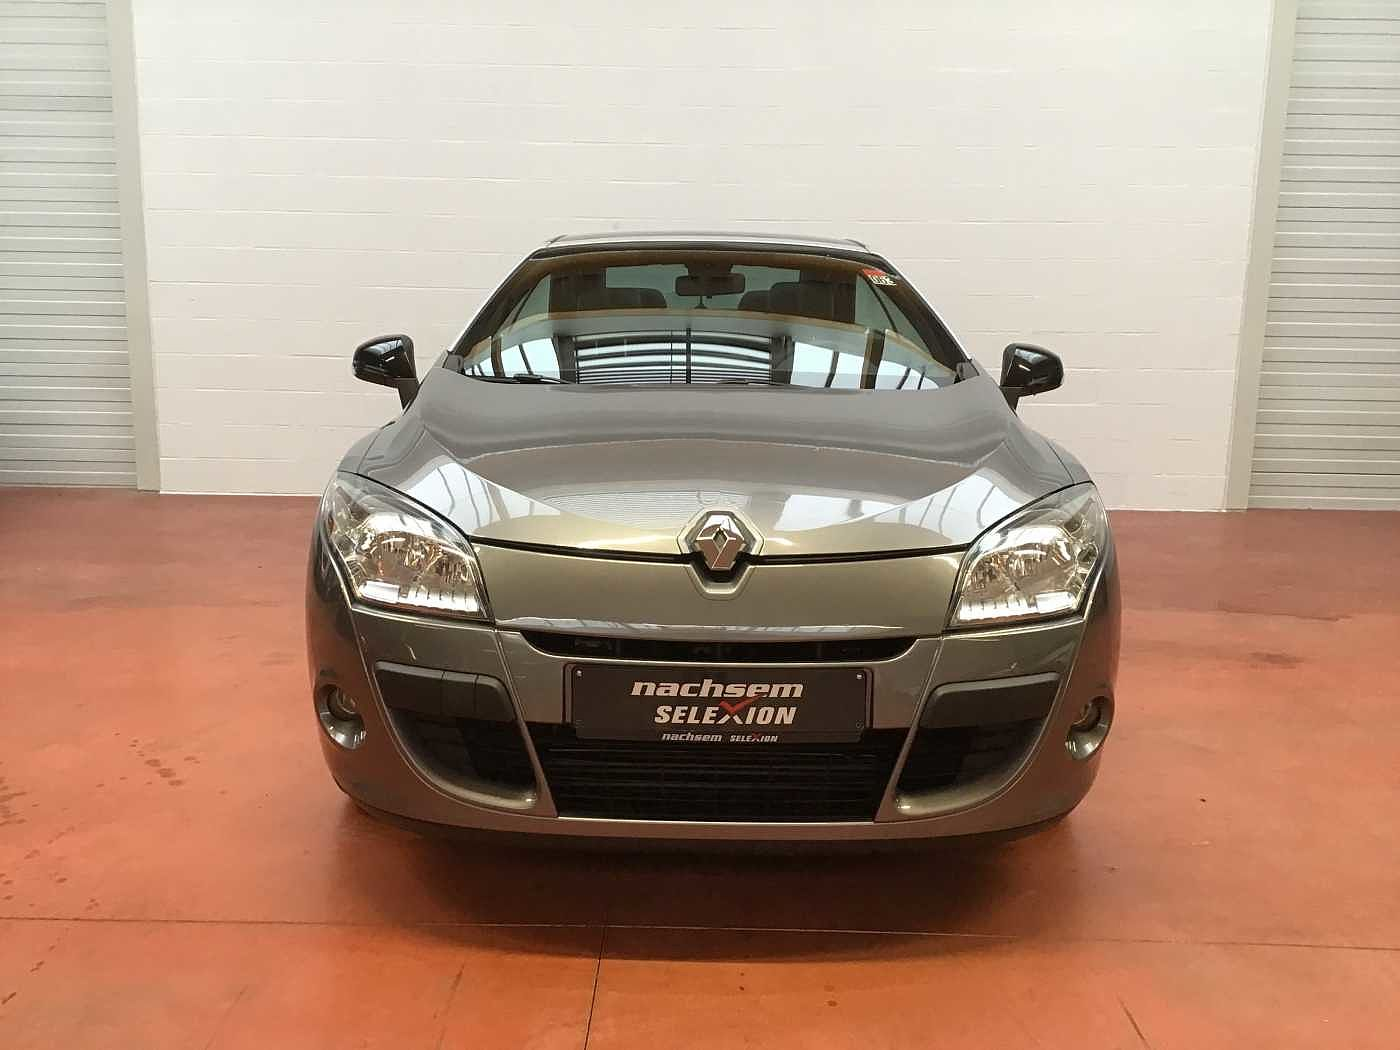 Renault Mégane 1.5 dCi 110cv - photo 5